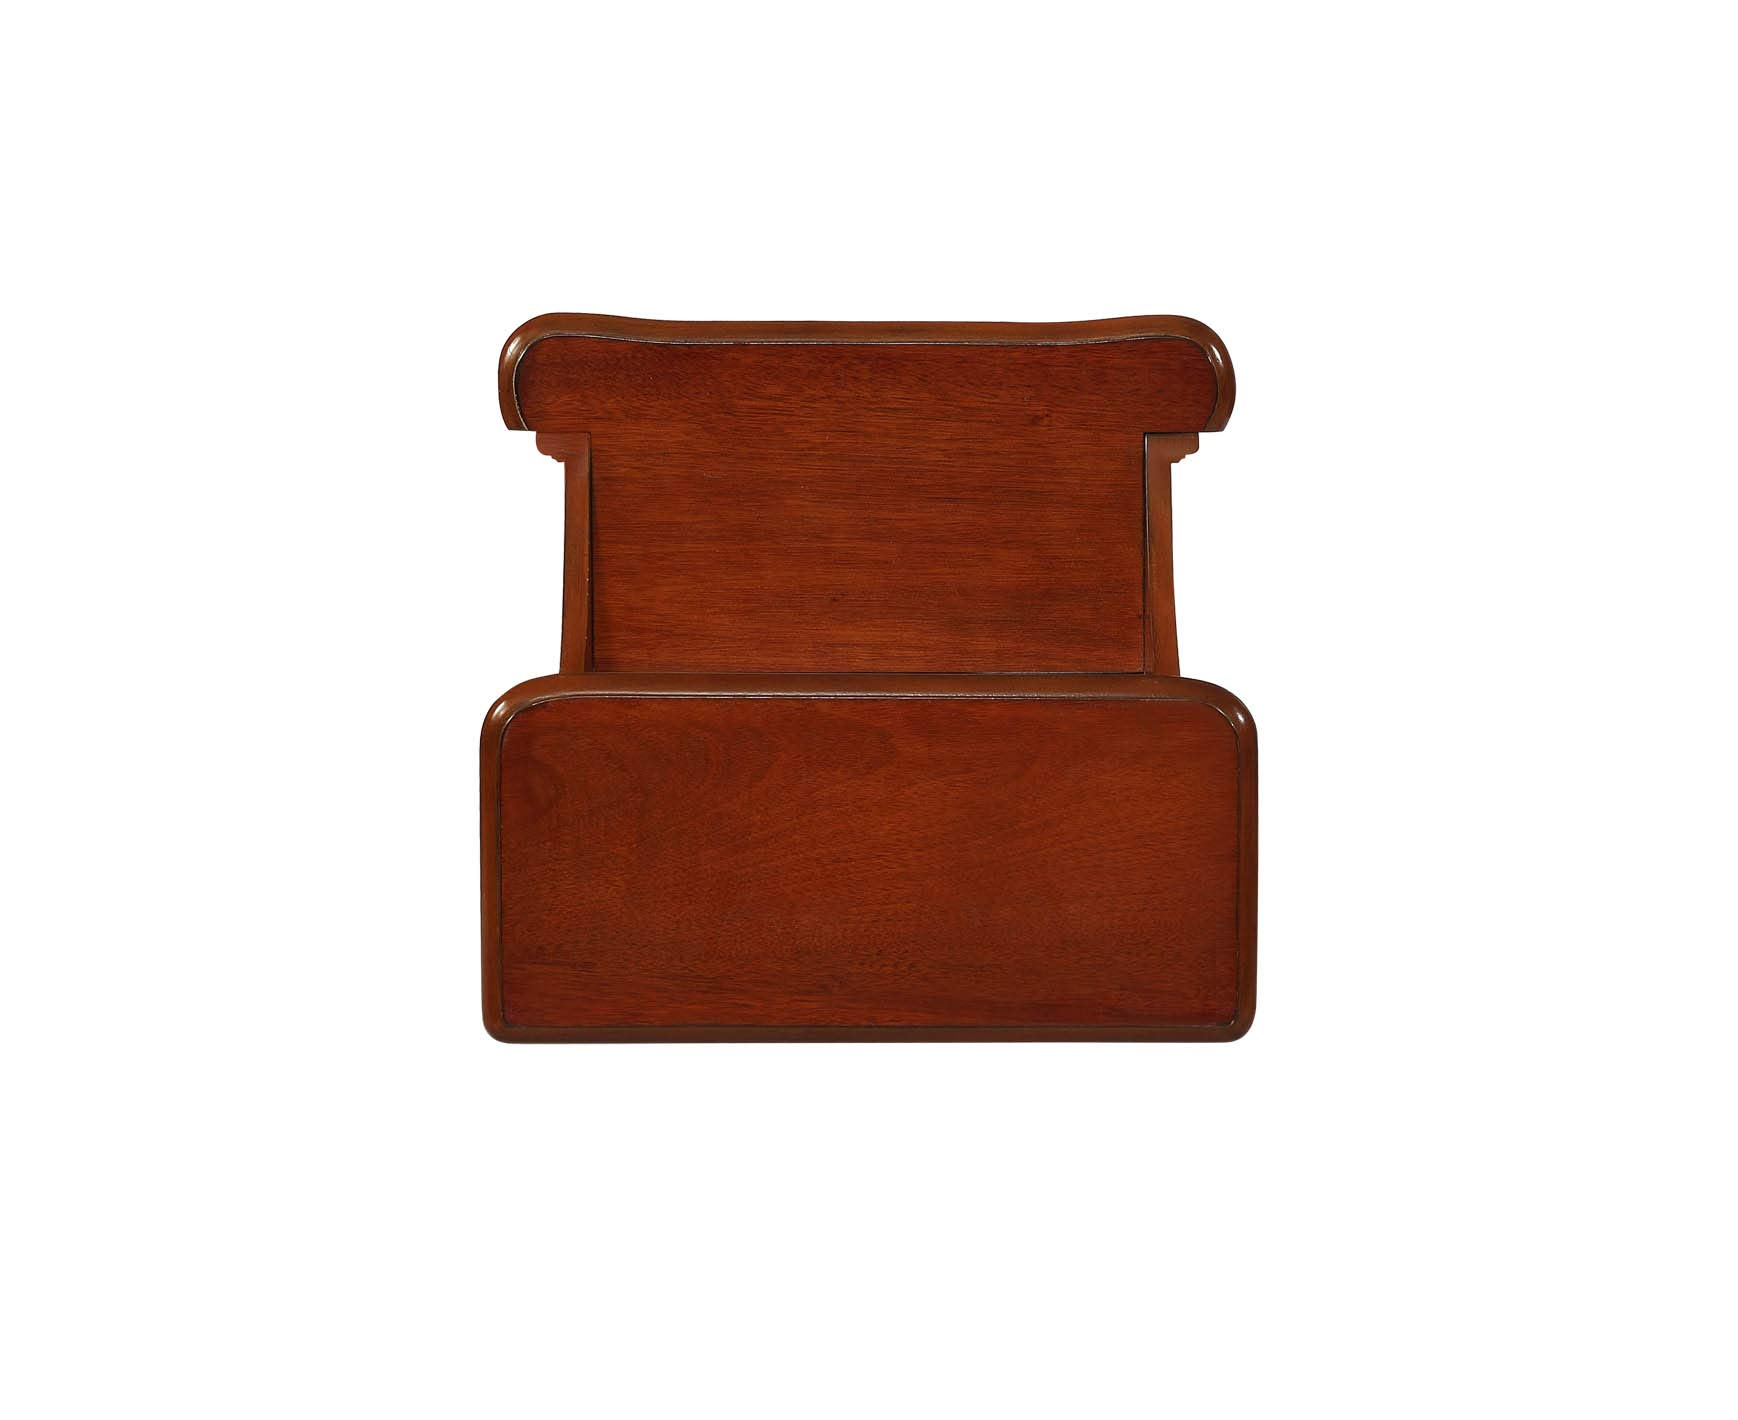 Powell Woodbury Mahogany Bed Step with Storage by Powell's Furniture